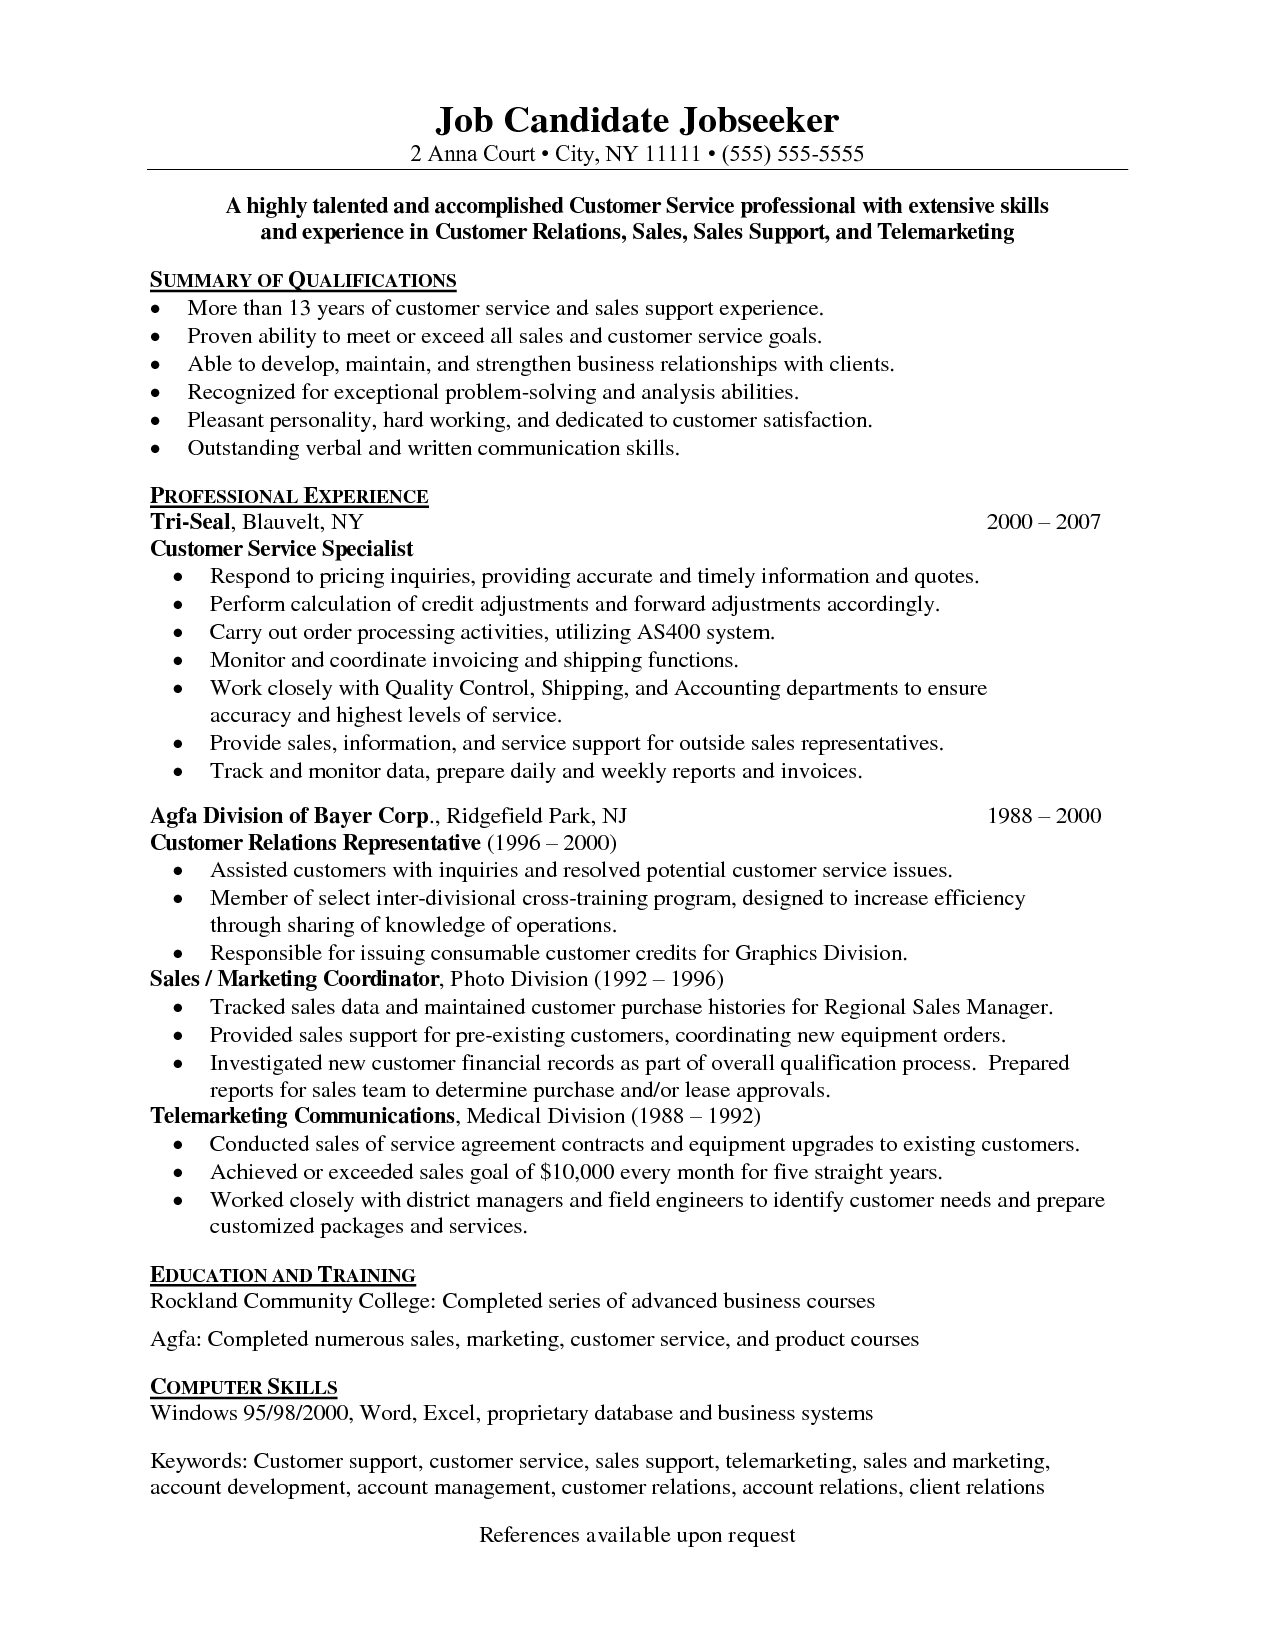 Picnictoimpeachus  Pleasing Customer Service Resume Format  Roiinvestingcom With Fetching Customer Service Resume Format  With Charming Resume  Page Also Line Cook Resume Sample In Addition Best Resume Style And Resume Examples For High School Student As Well As Ta Resume Additionally Call Center Skills Resume From Roiinvestingcom With Picnictoimpeachus  Fetching Customer Service Resume Format  Roiinvestingcom With Charming Customer Service Resume Format  And Pleasing Resume  Page Also Line Cook Resume Sample In Addition Best Resume Style From Roiinvestingcom